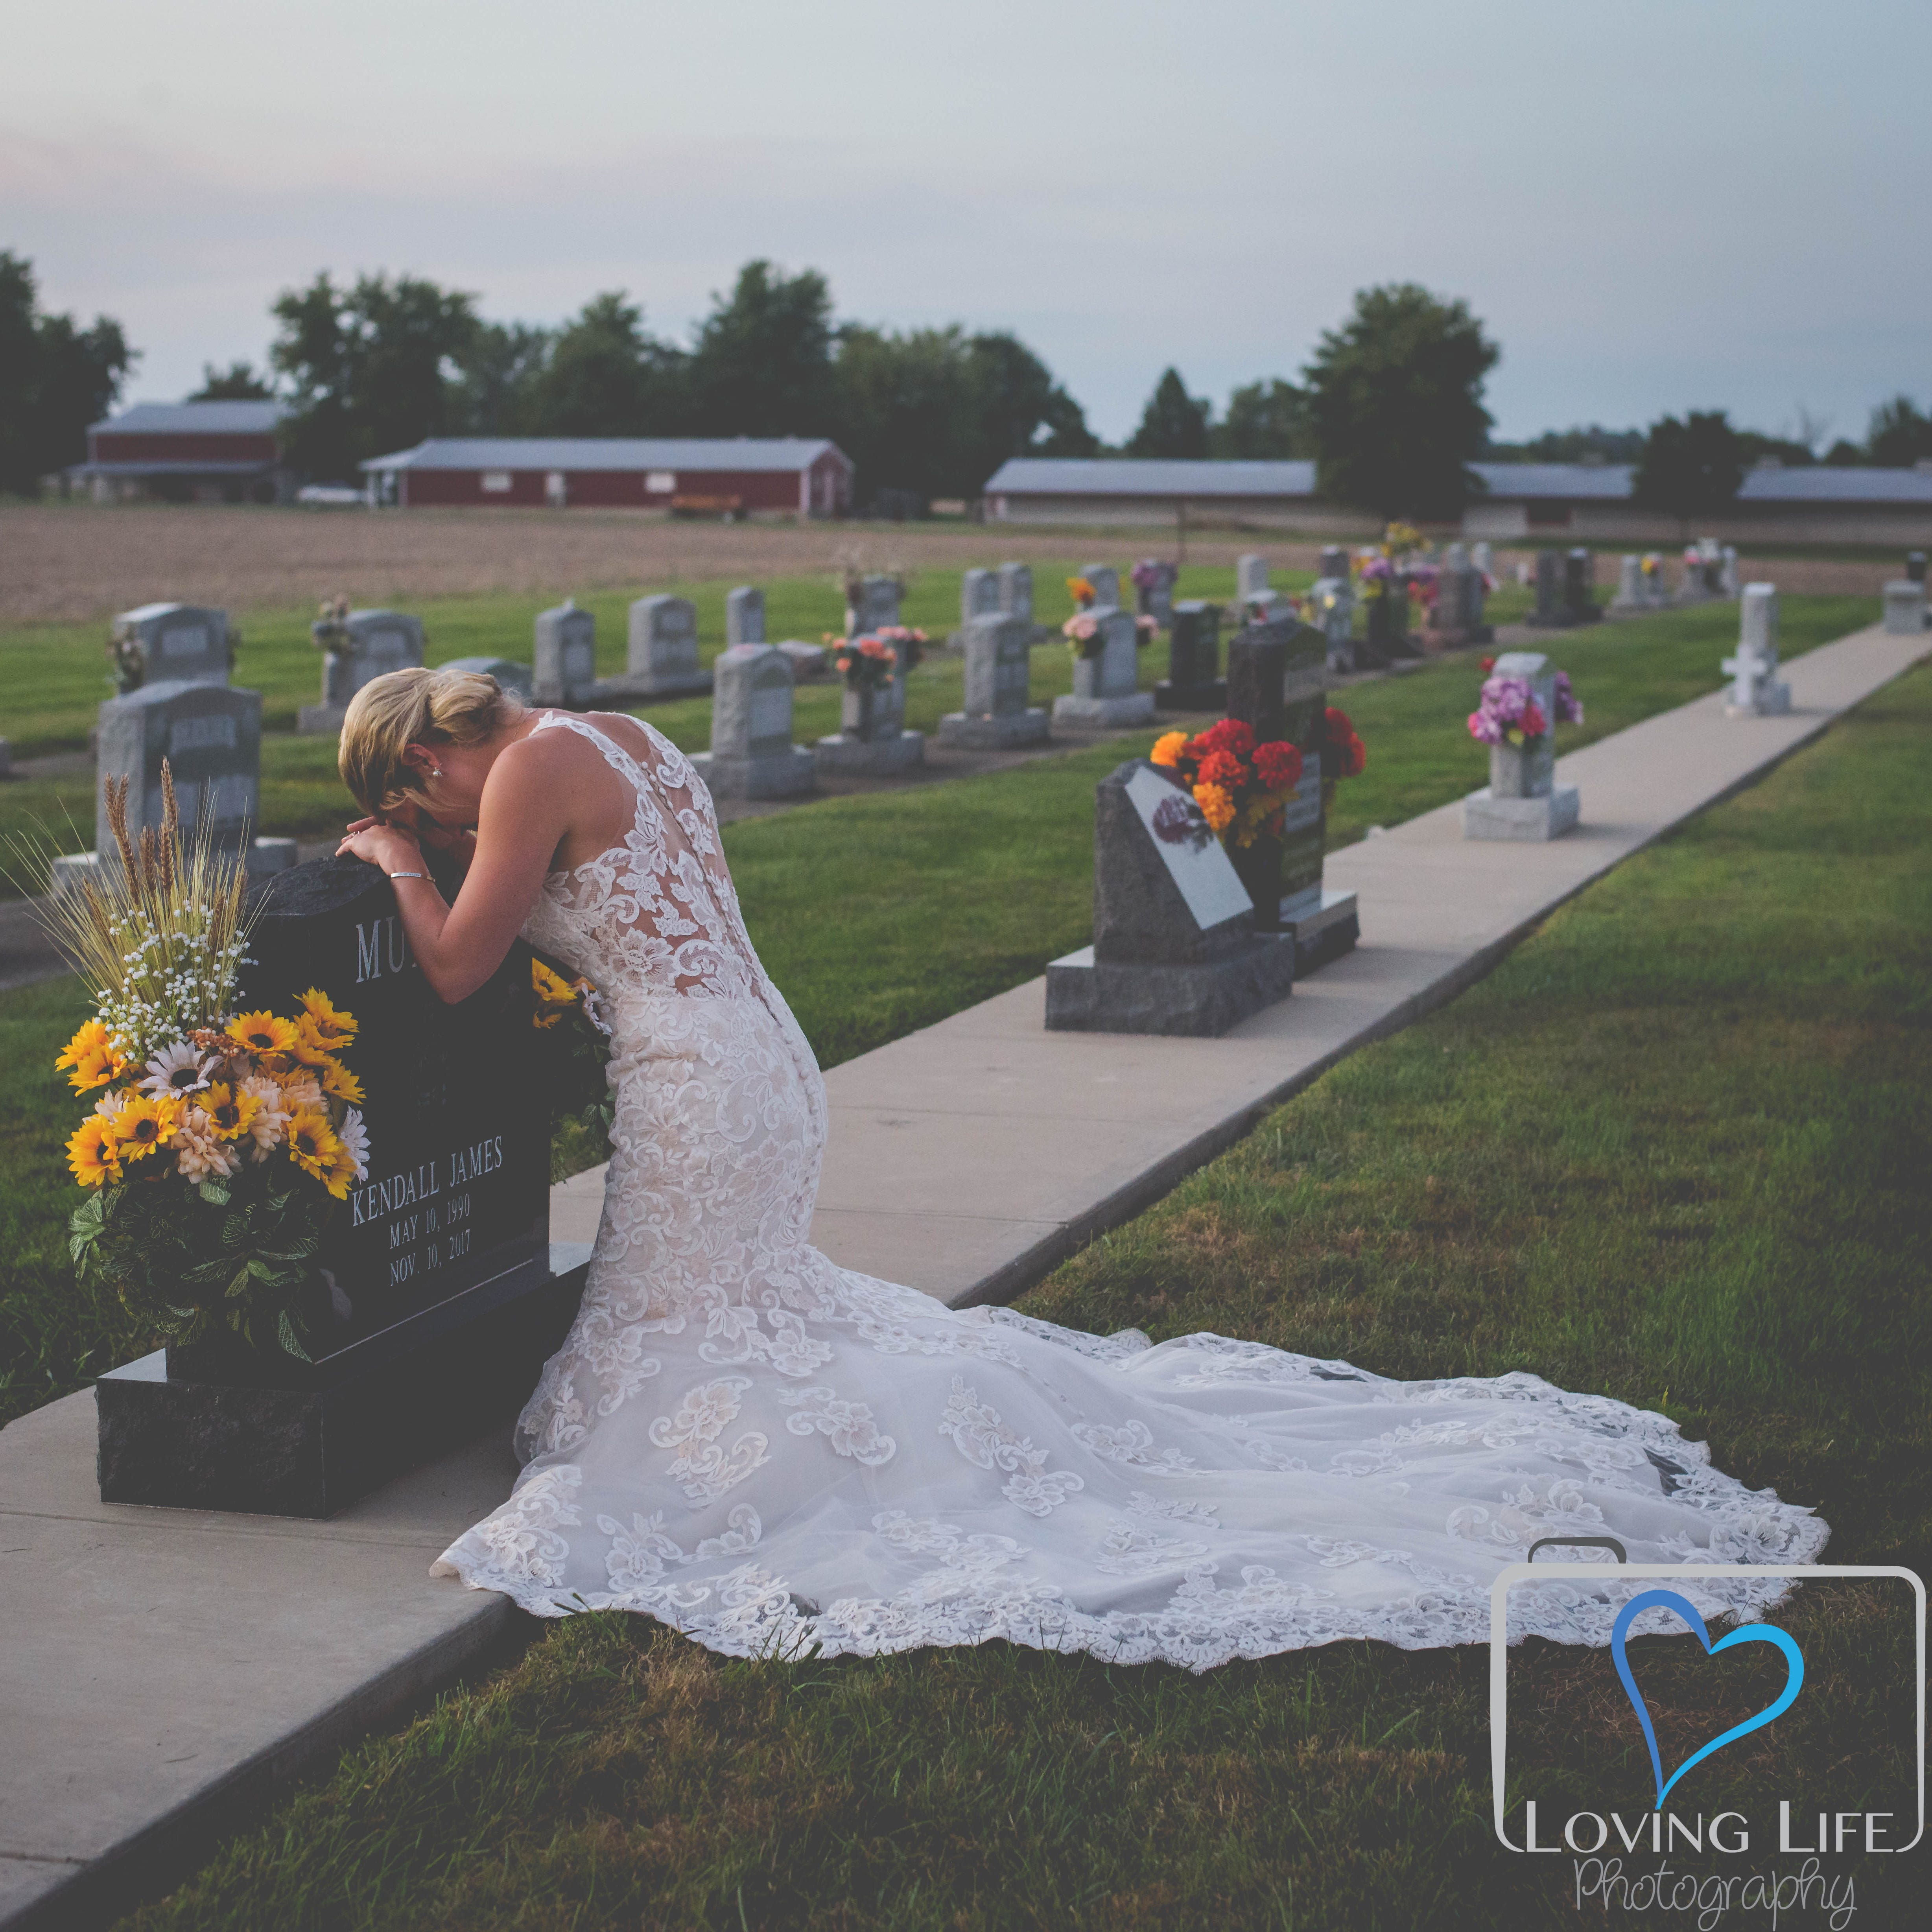 Her fiancé died during their engagement. A wedding day photoshoot brought 'closure.'